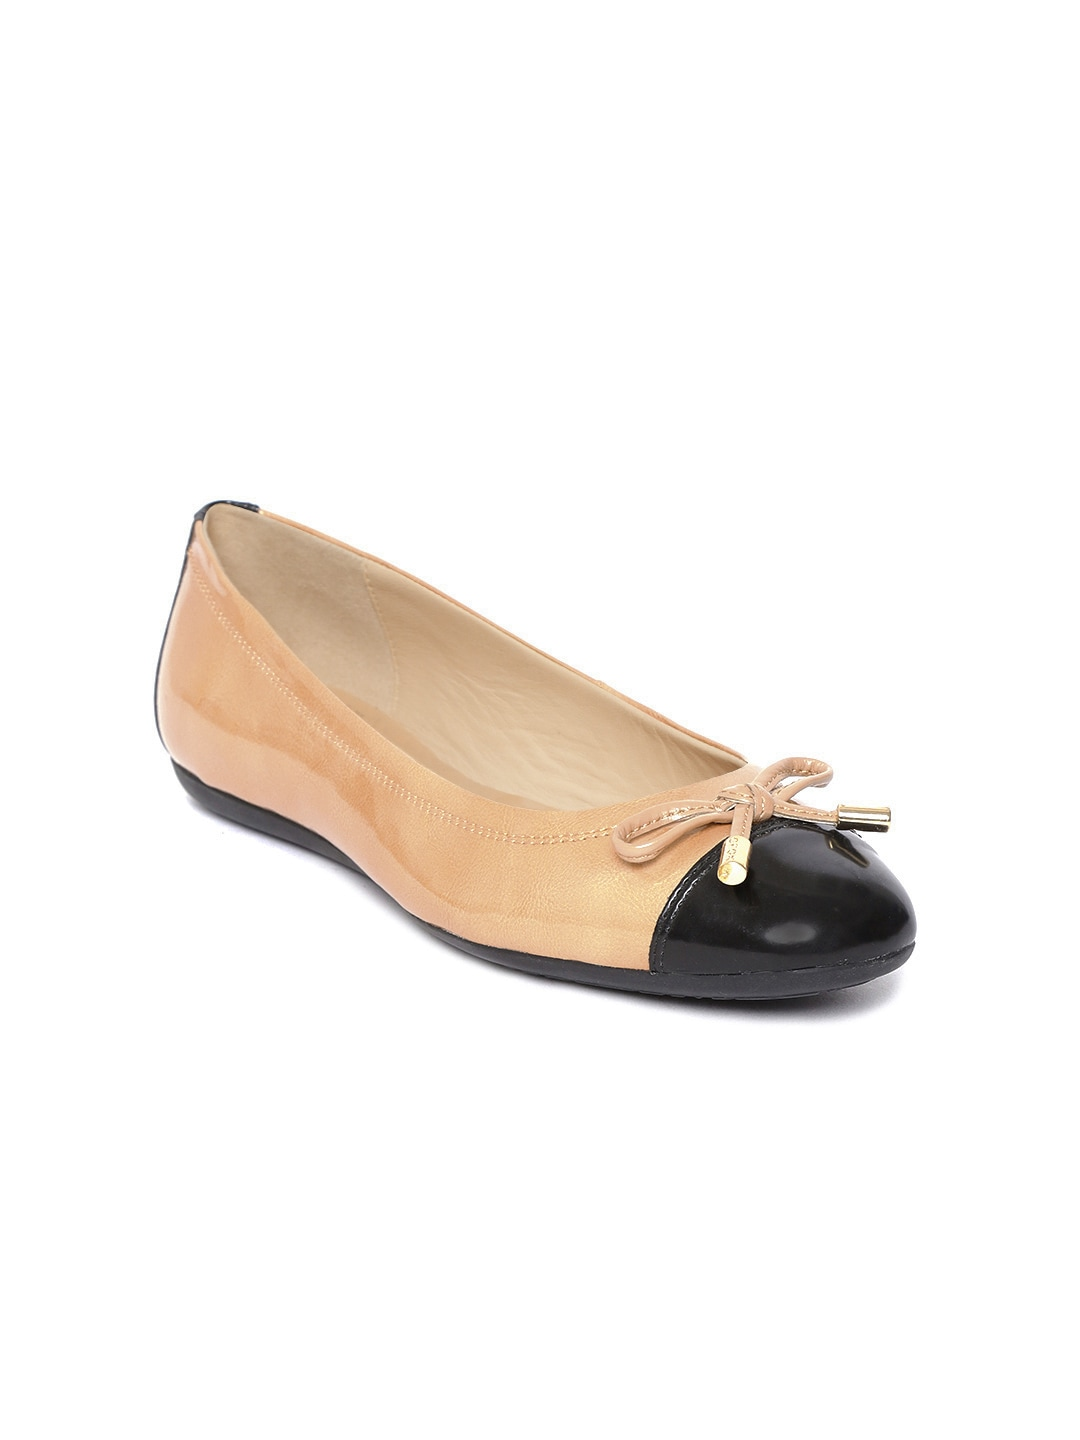 920b040b78 Ballerina Shoes For Women - Buy Ballerina Shoes For Women online in India